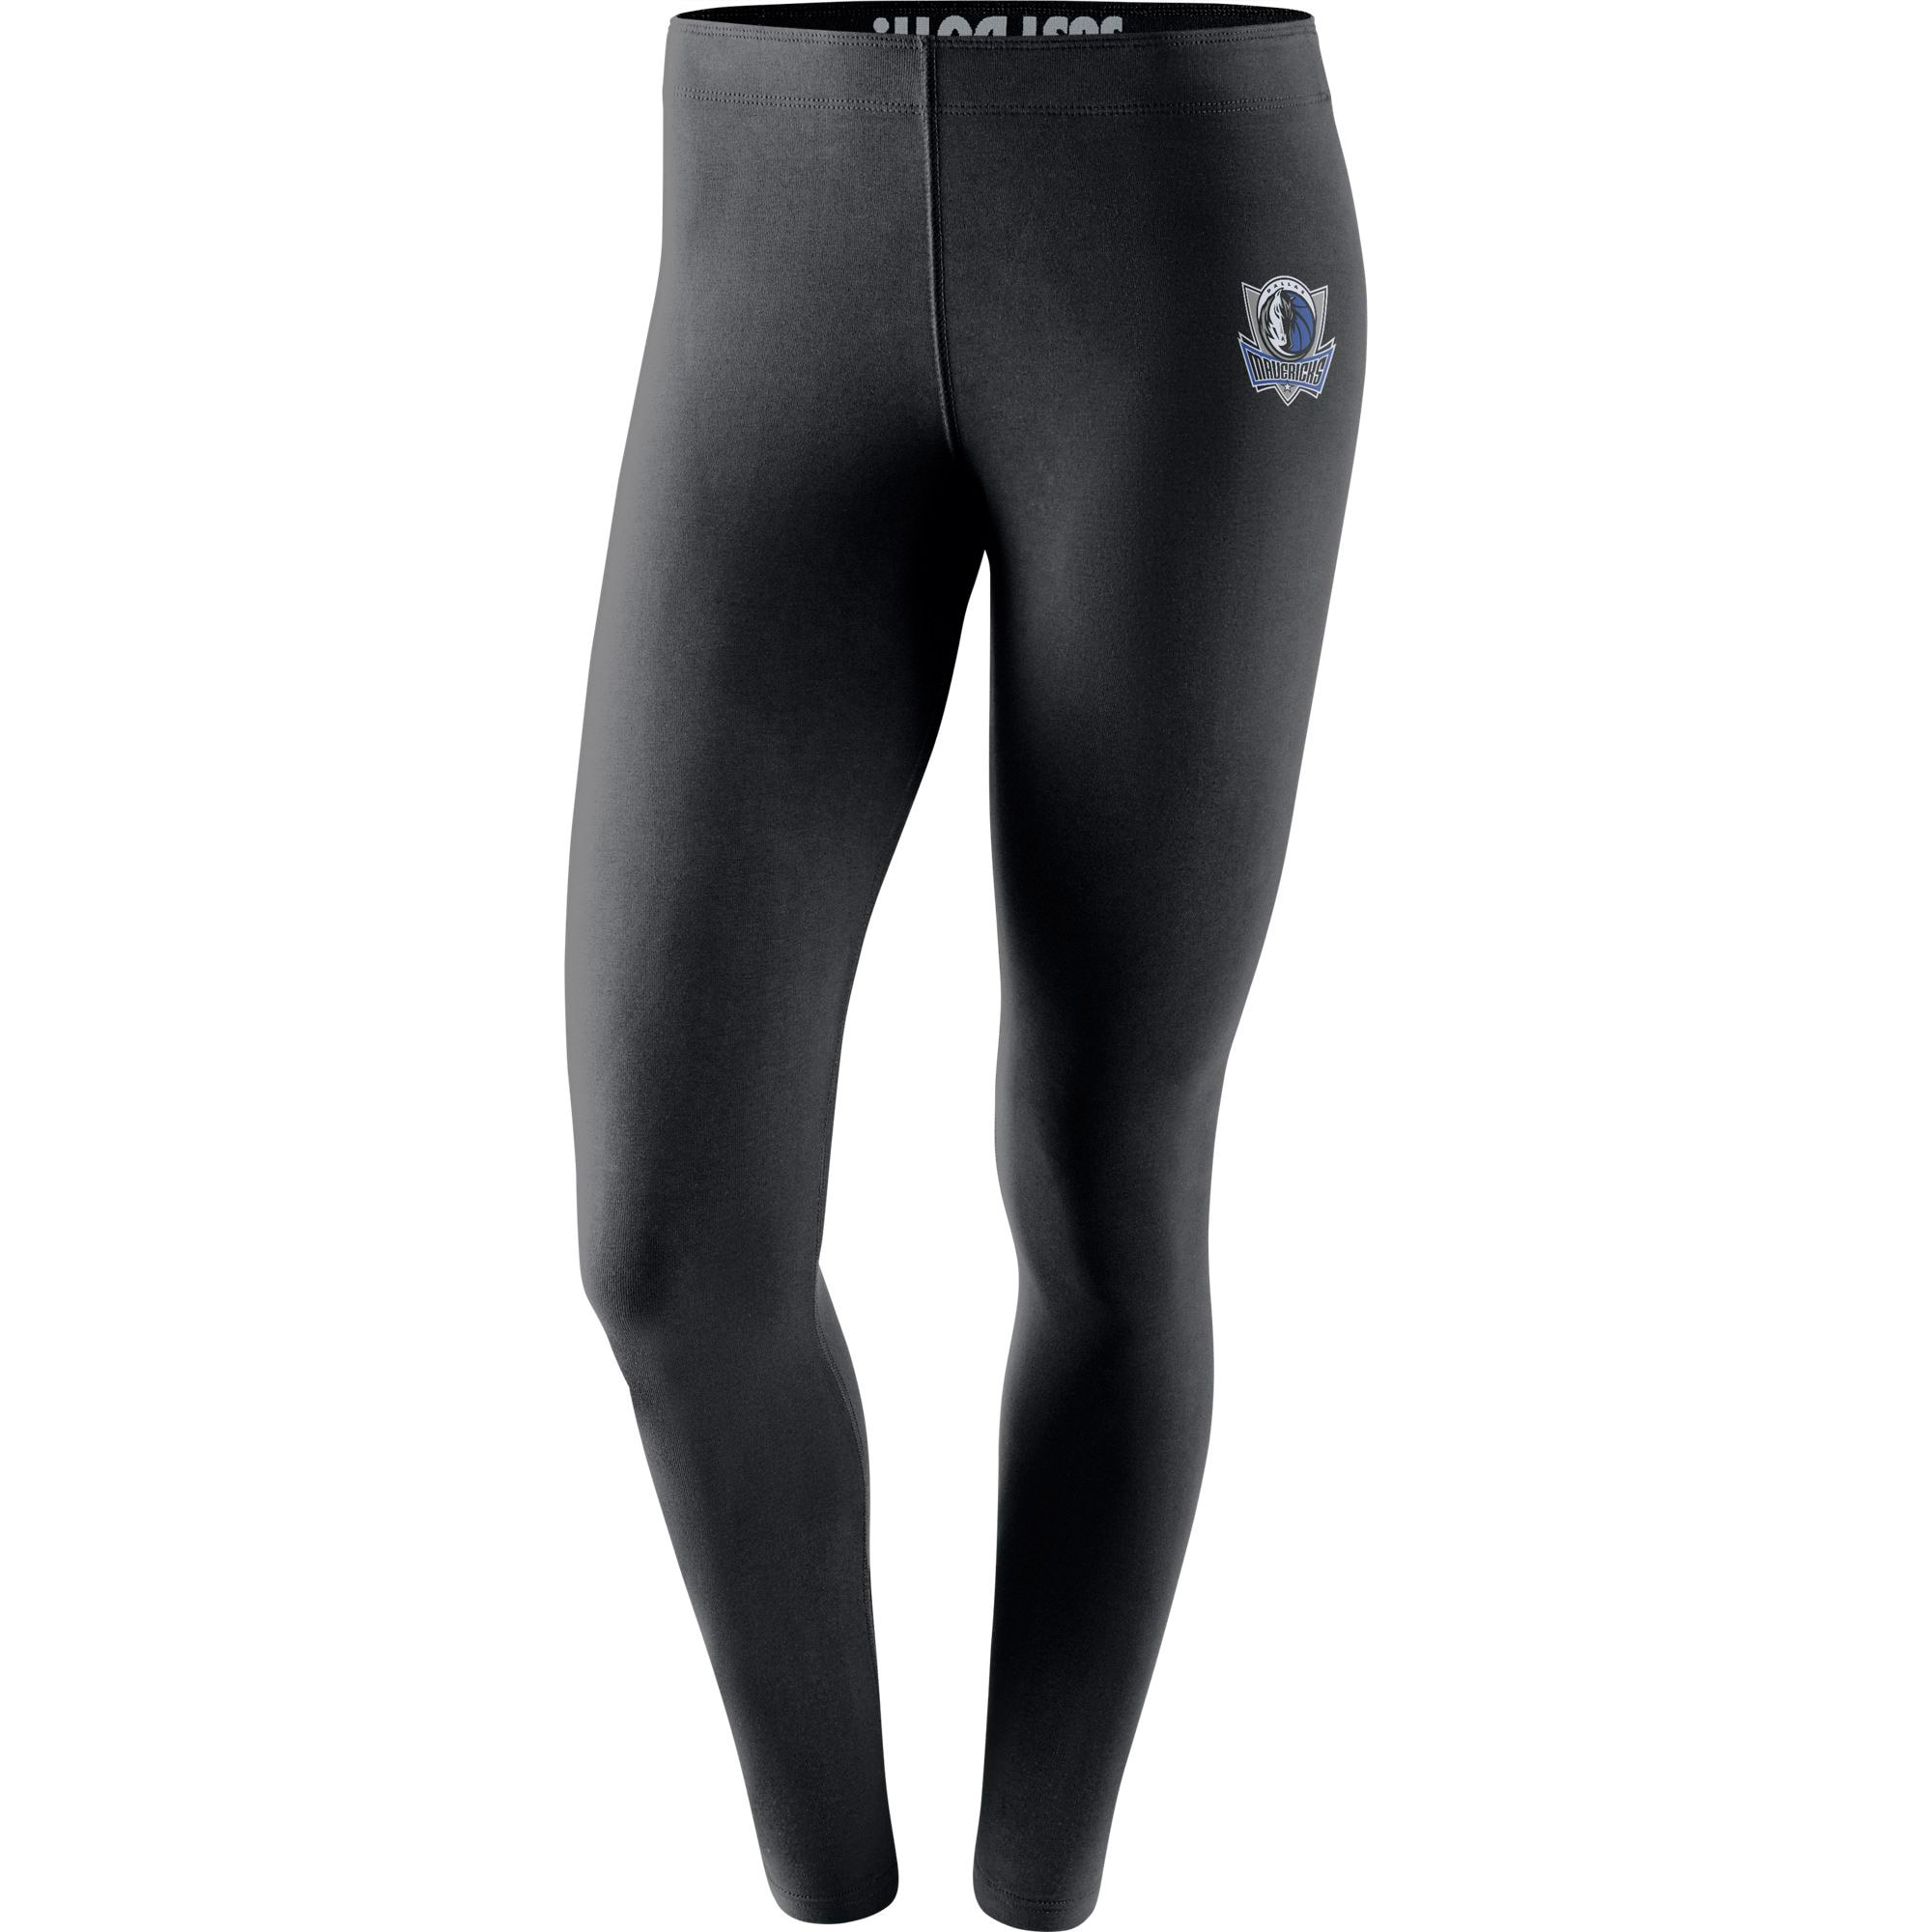 Dallas Mavericks Nike Women's Leg-A-See Tights - Black